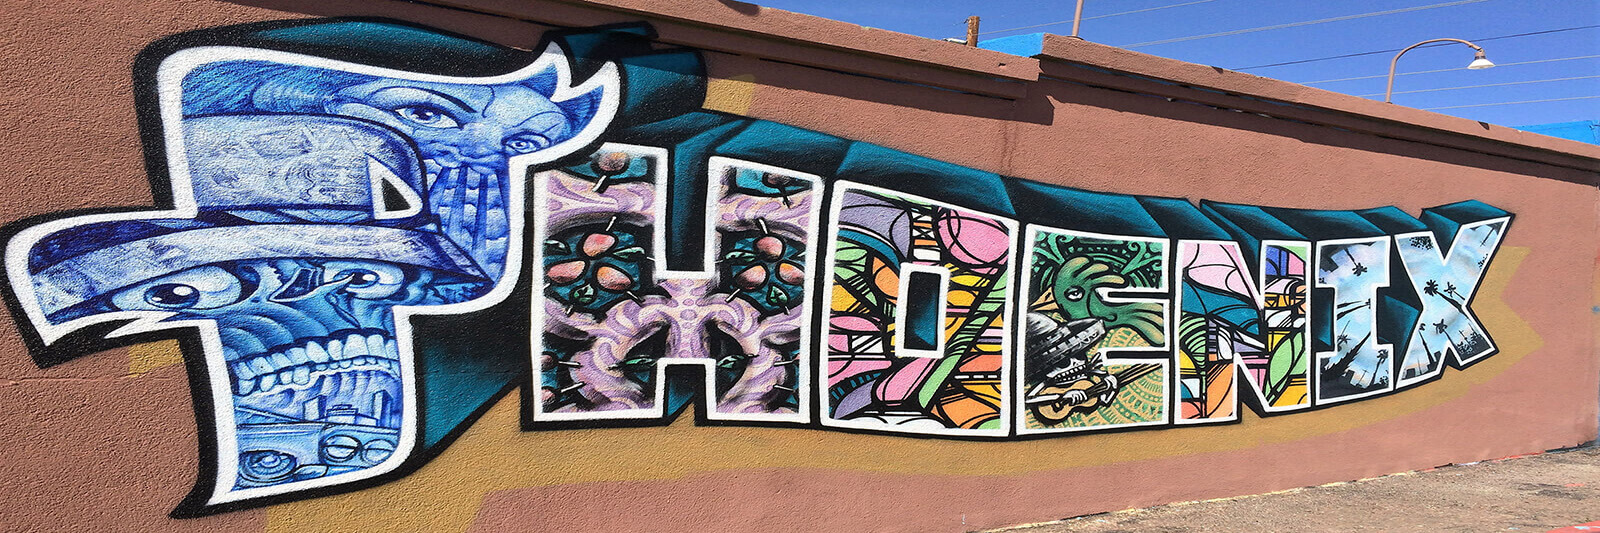 Street Art in Phoenix, Arizona